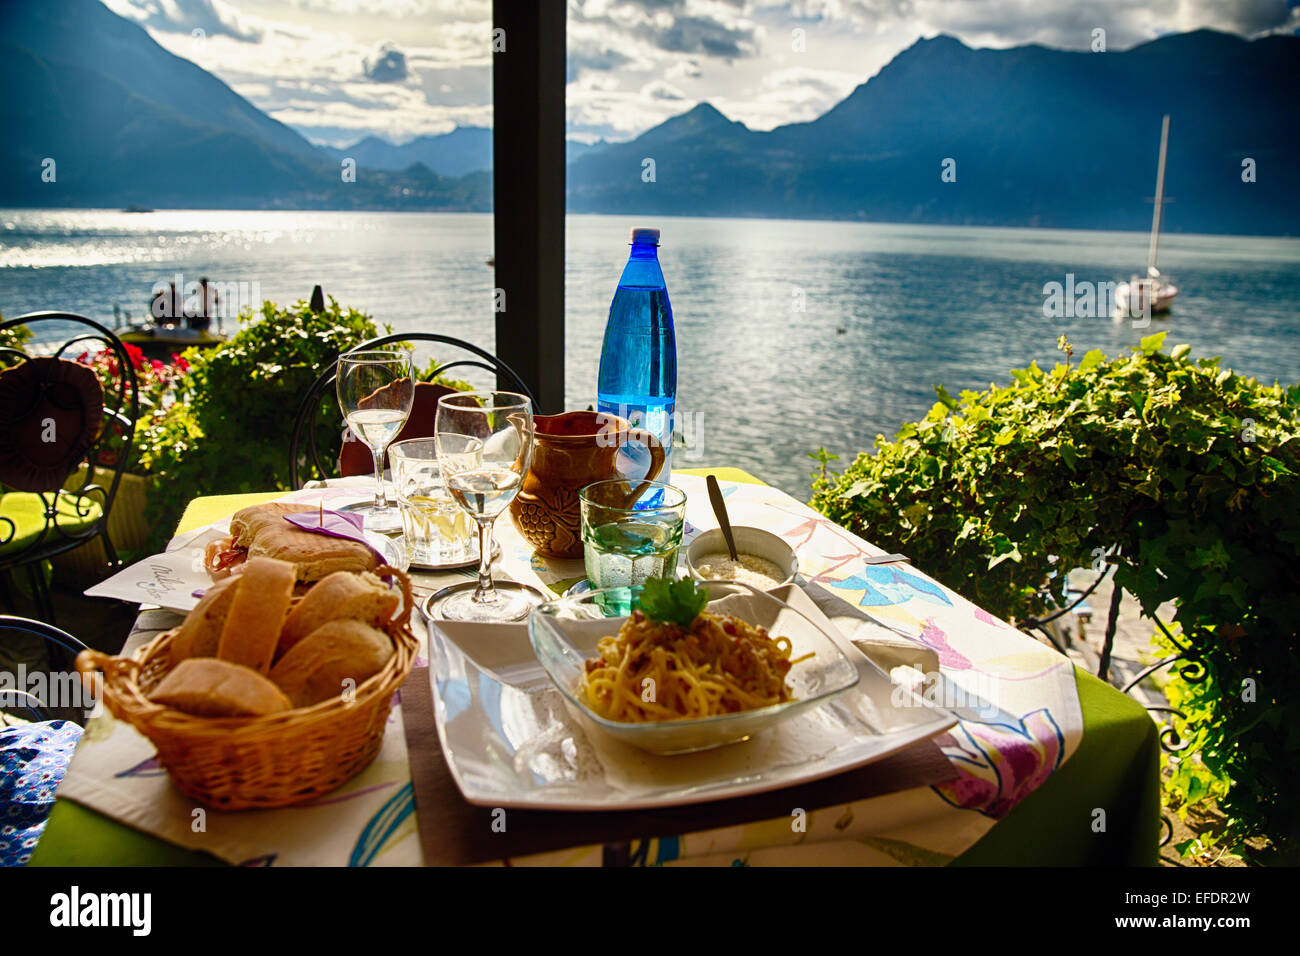 Food on a restaurant table with a lake view varenna lake for Varenna cuisine